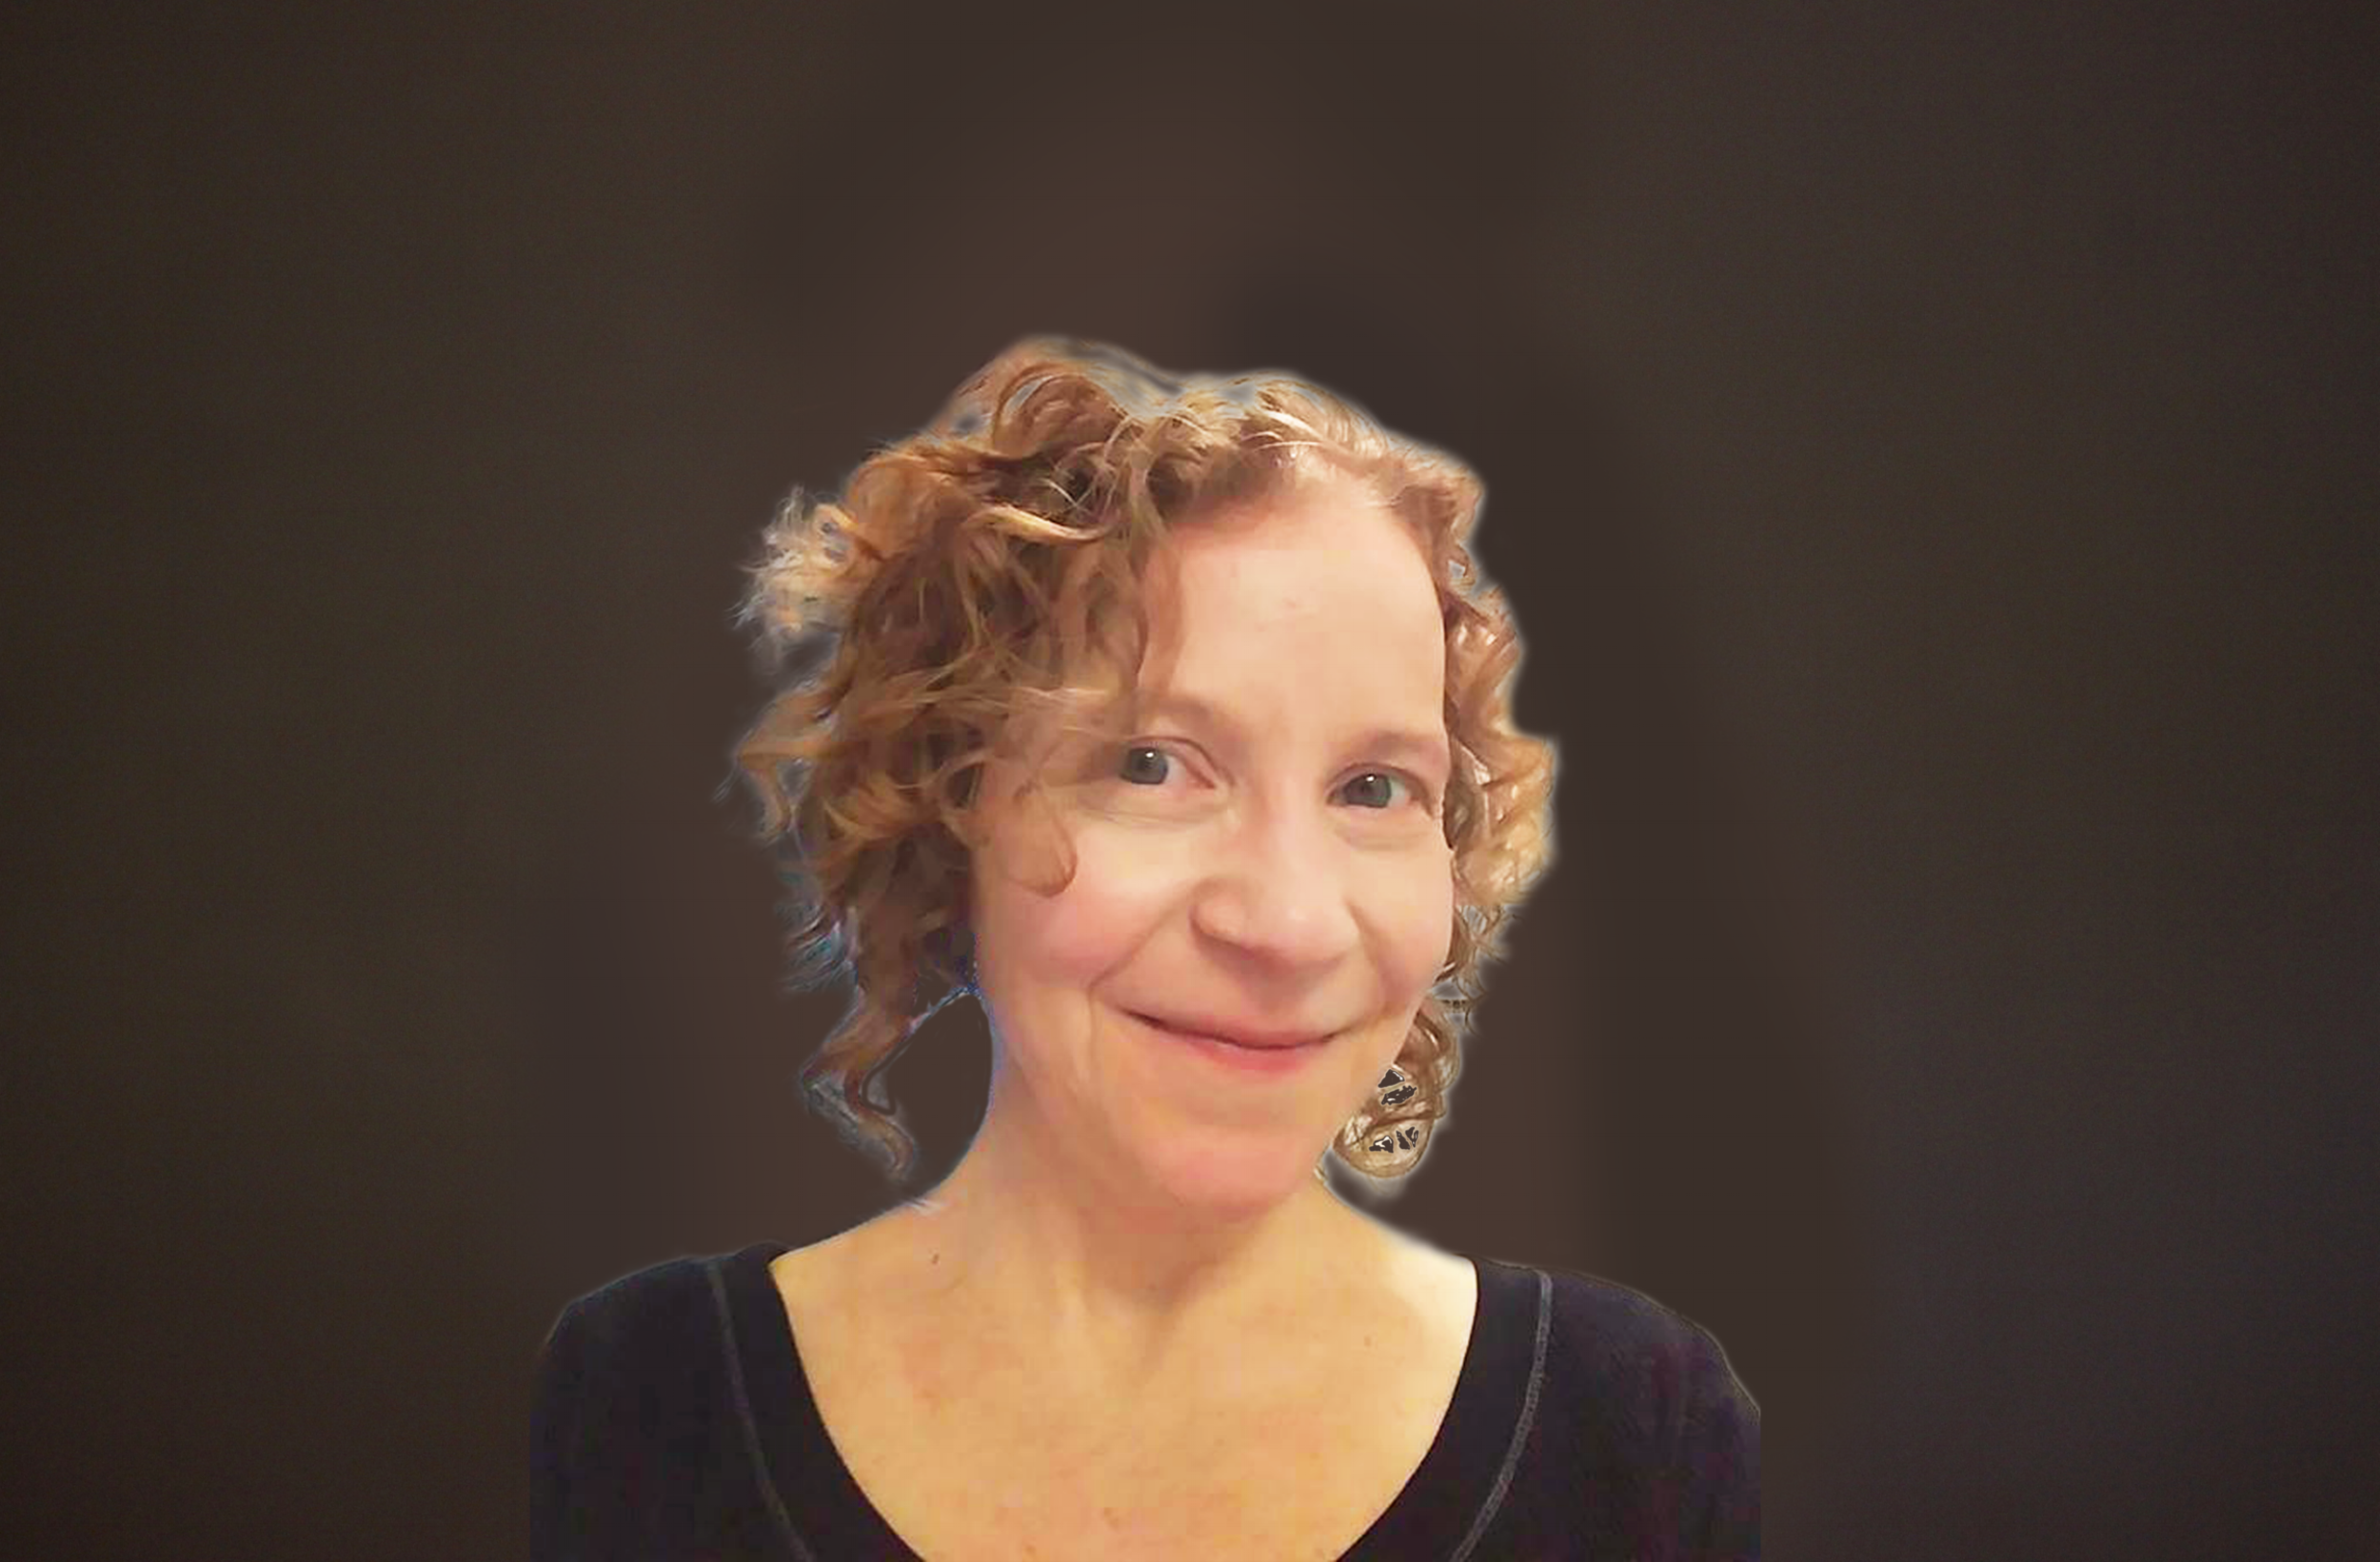 RENEE HOWARD - Renee lives in Minneapolis where she is active in the theatre scene. She has performed/contributed to MB Adaptors SLEEPWALKERS and HUMAN SHOW, and is presently Certifying via Margolis Method Online.